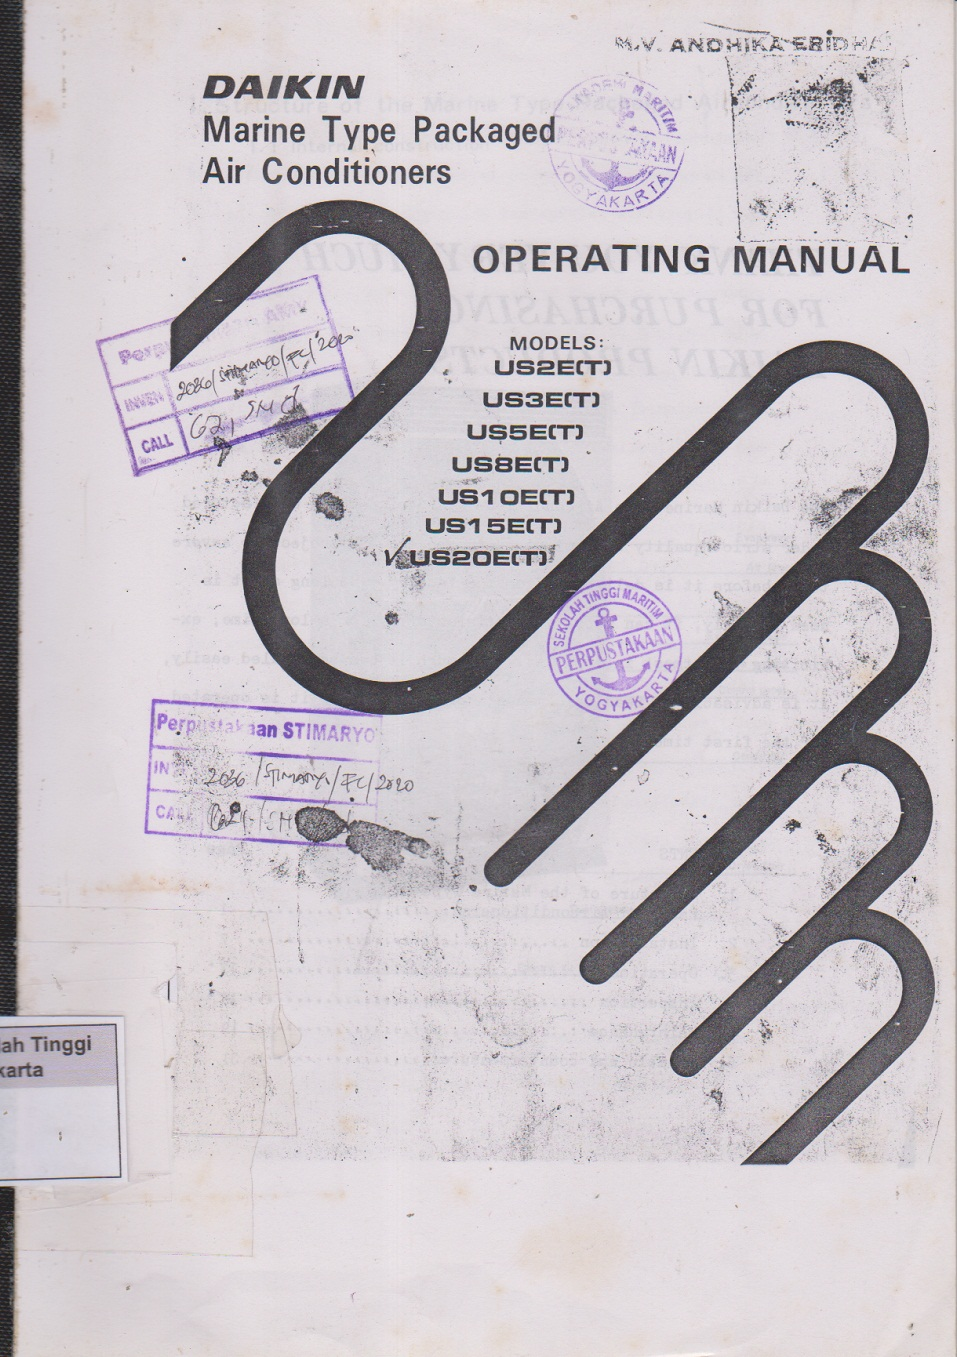 Dikin Marine Type Packaged Air Conditioners Operating Manual